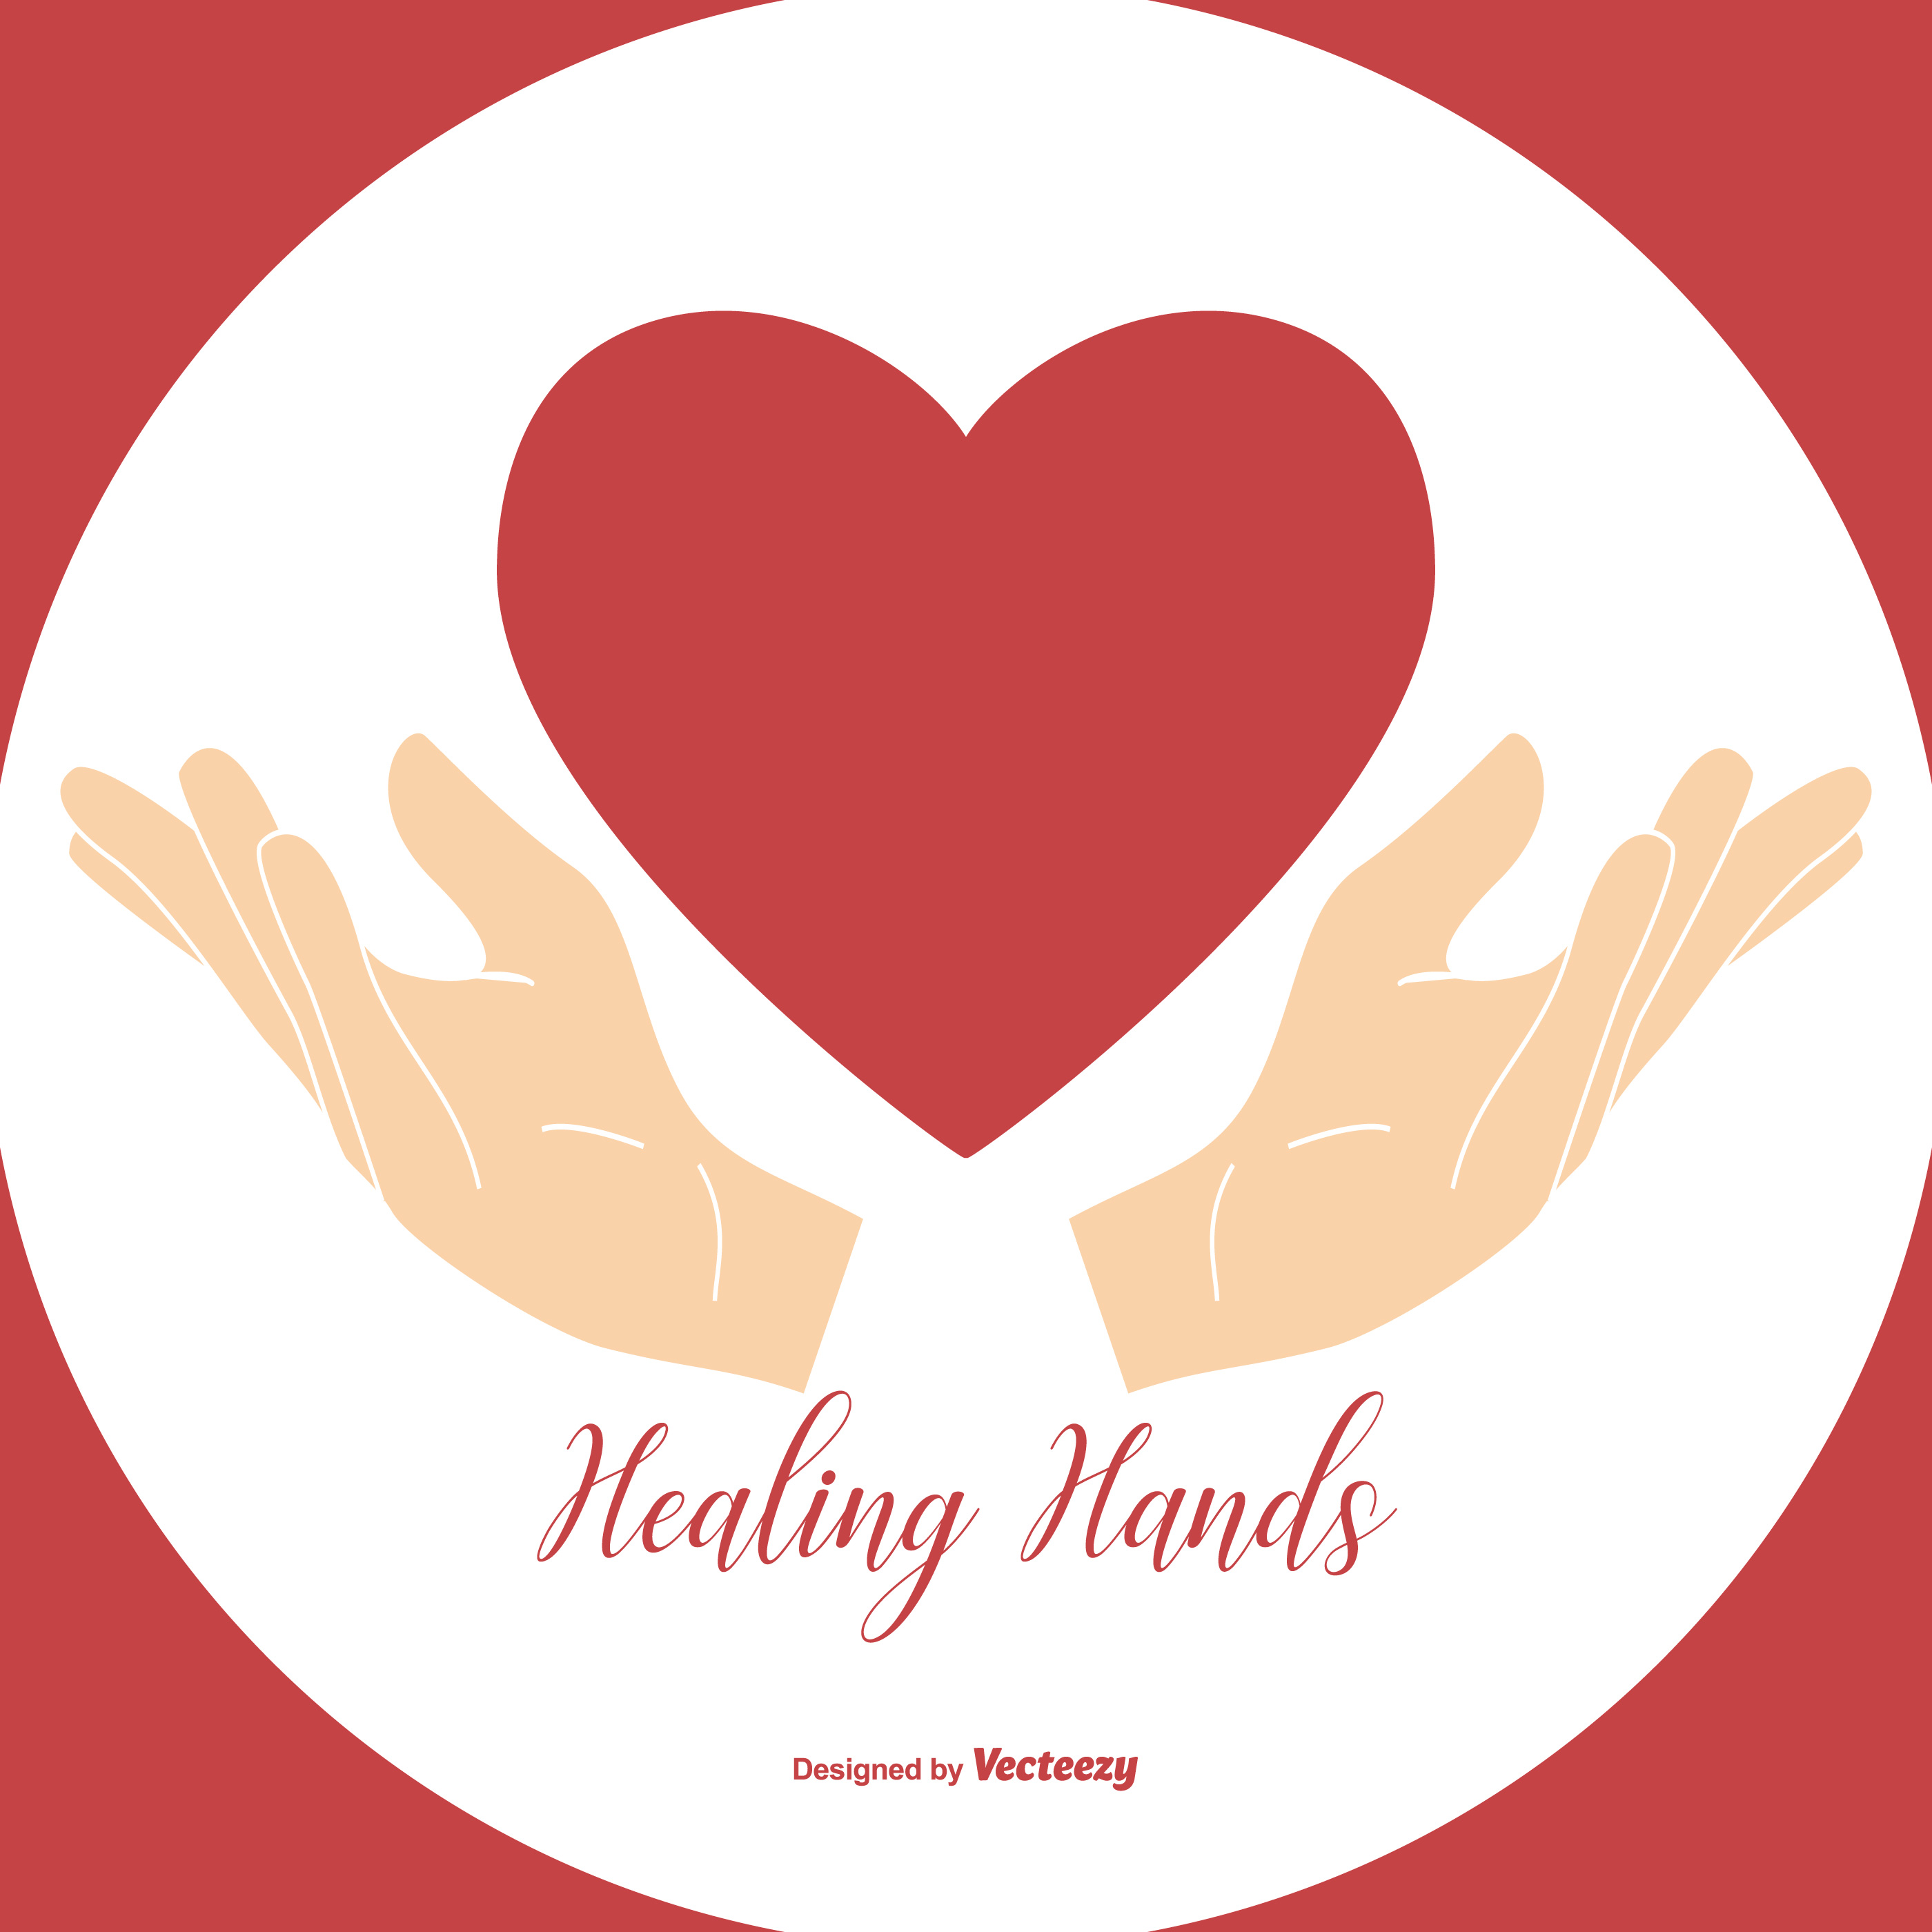 Healing Hands Holding Heart Illustration - Download Free ...